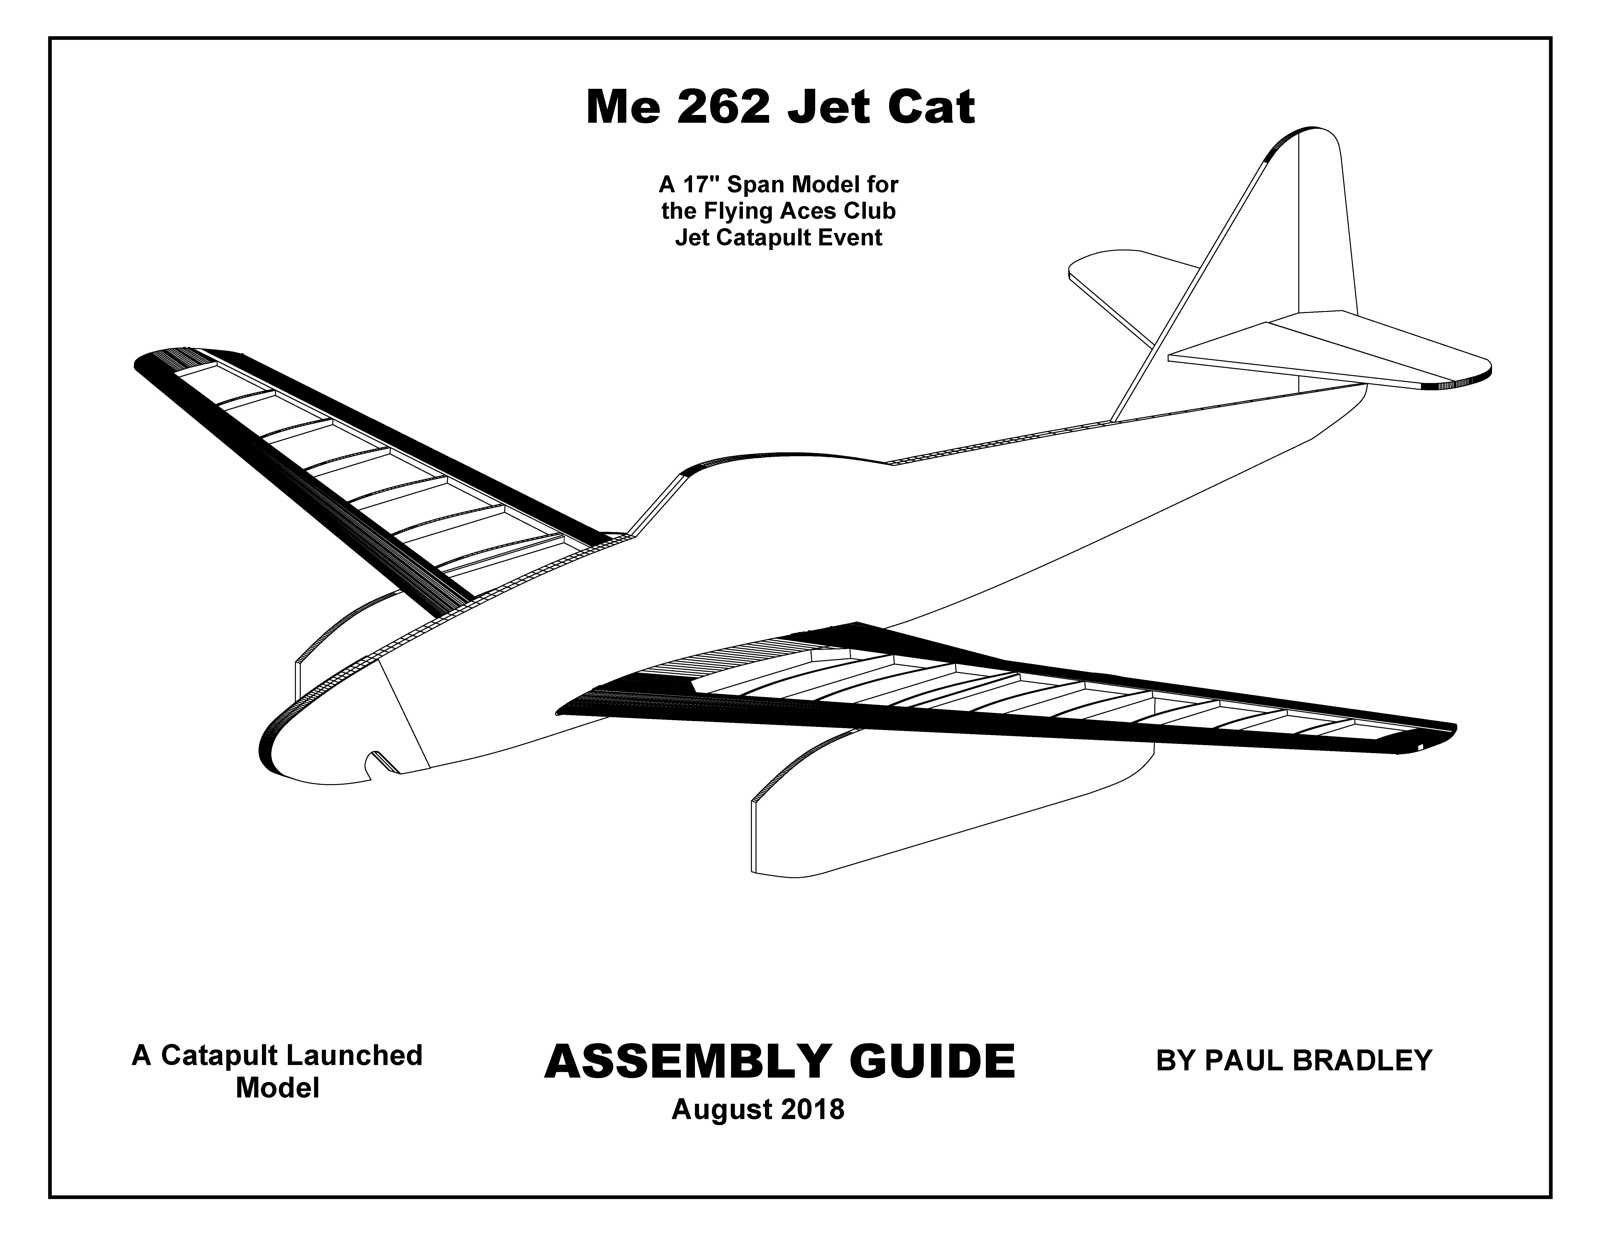 https://0201.nccdn.net/1_2/000/000/12d/d8e/Me-262-Jet-Cat-Assembly-Guide-page-1600x1236.jpg